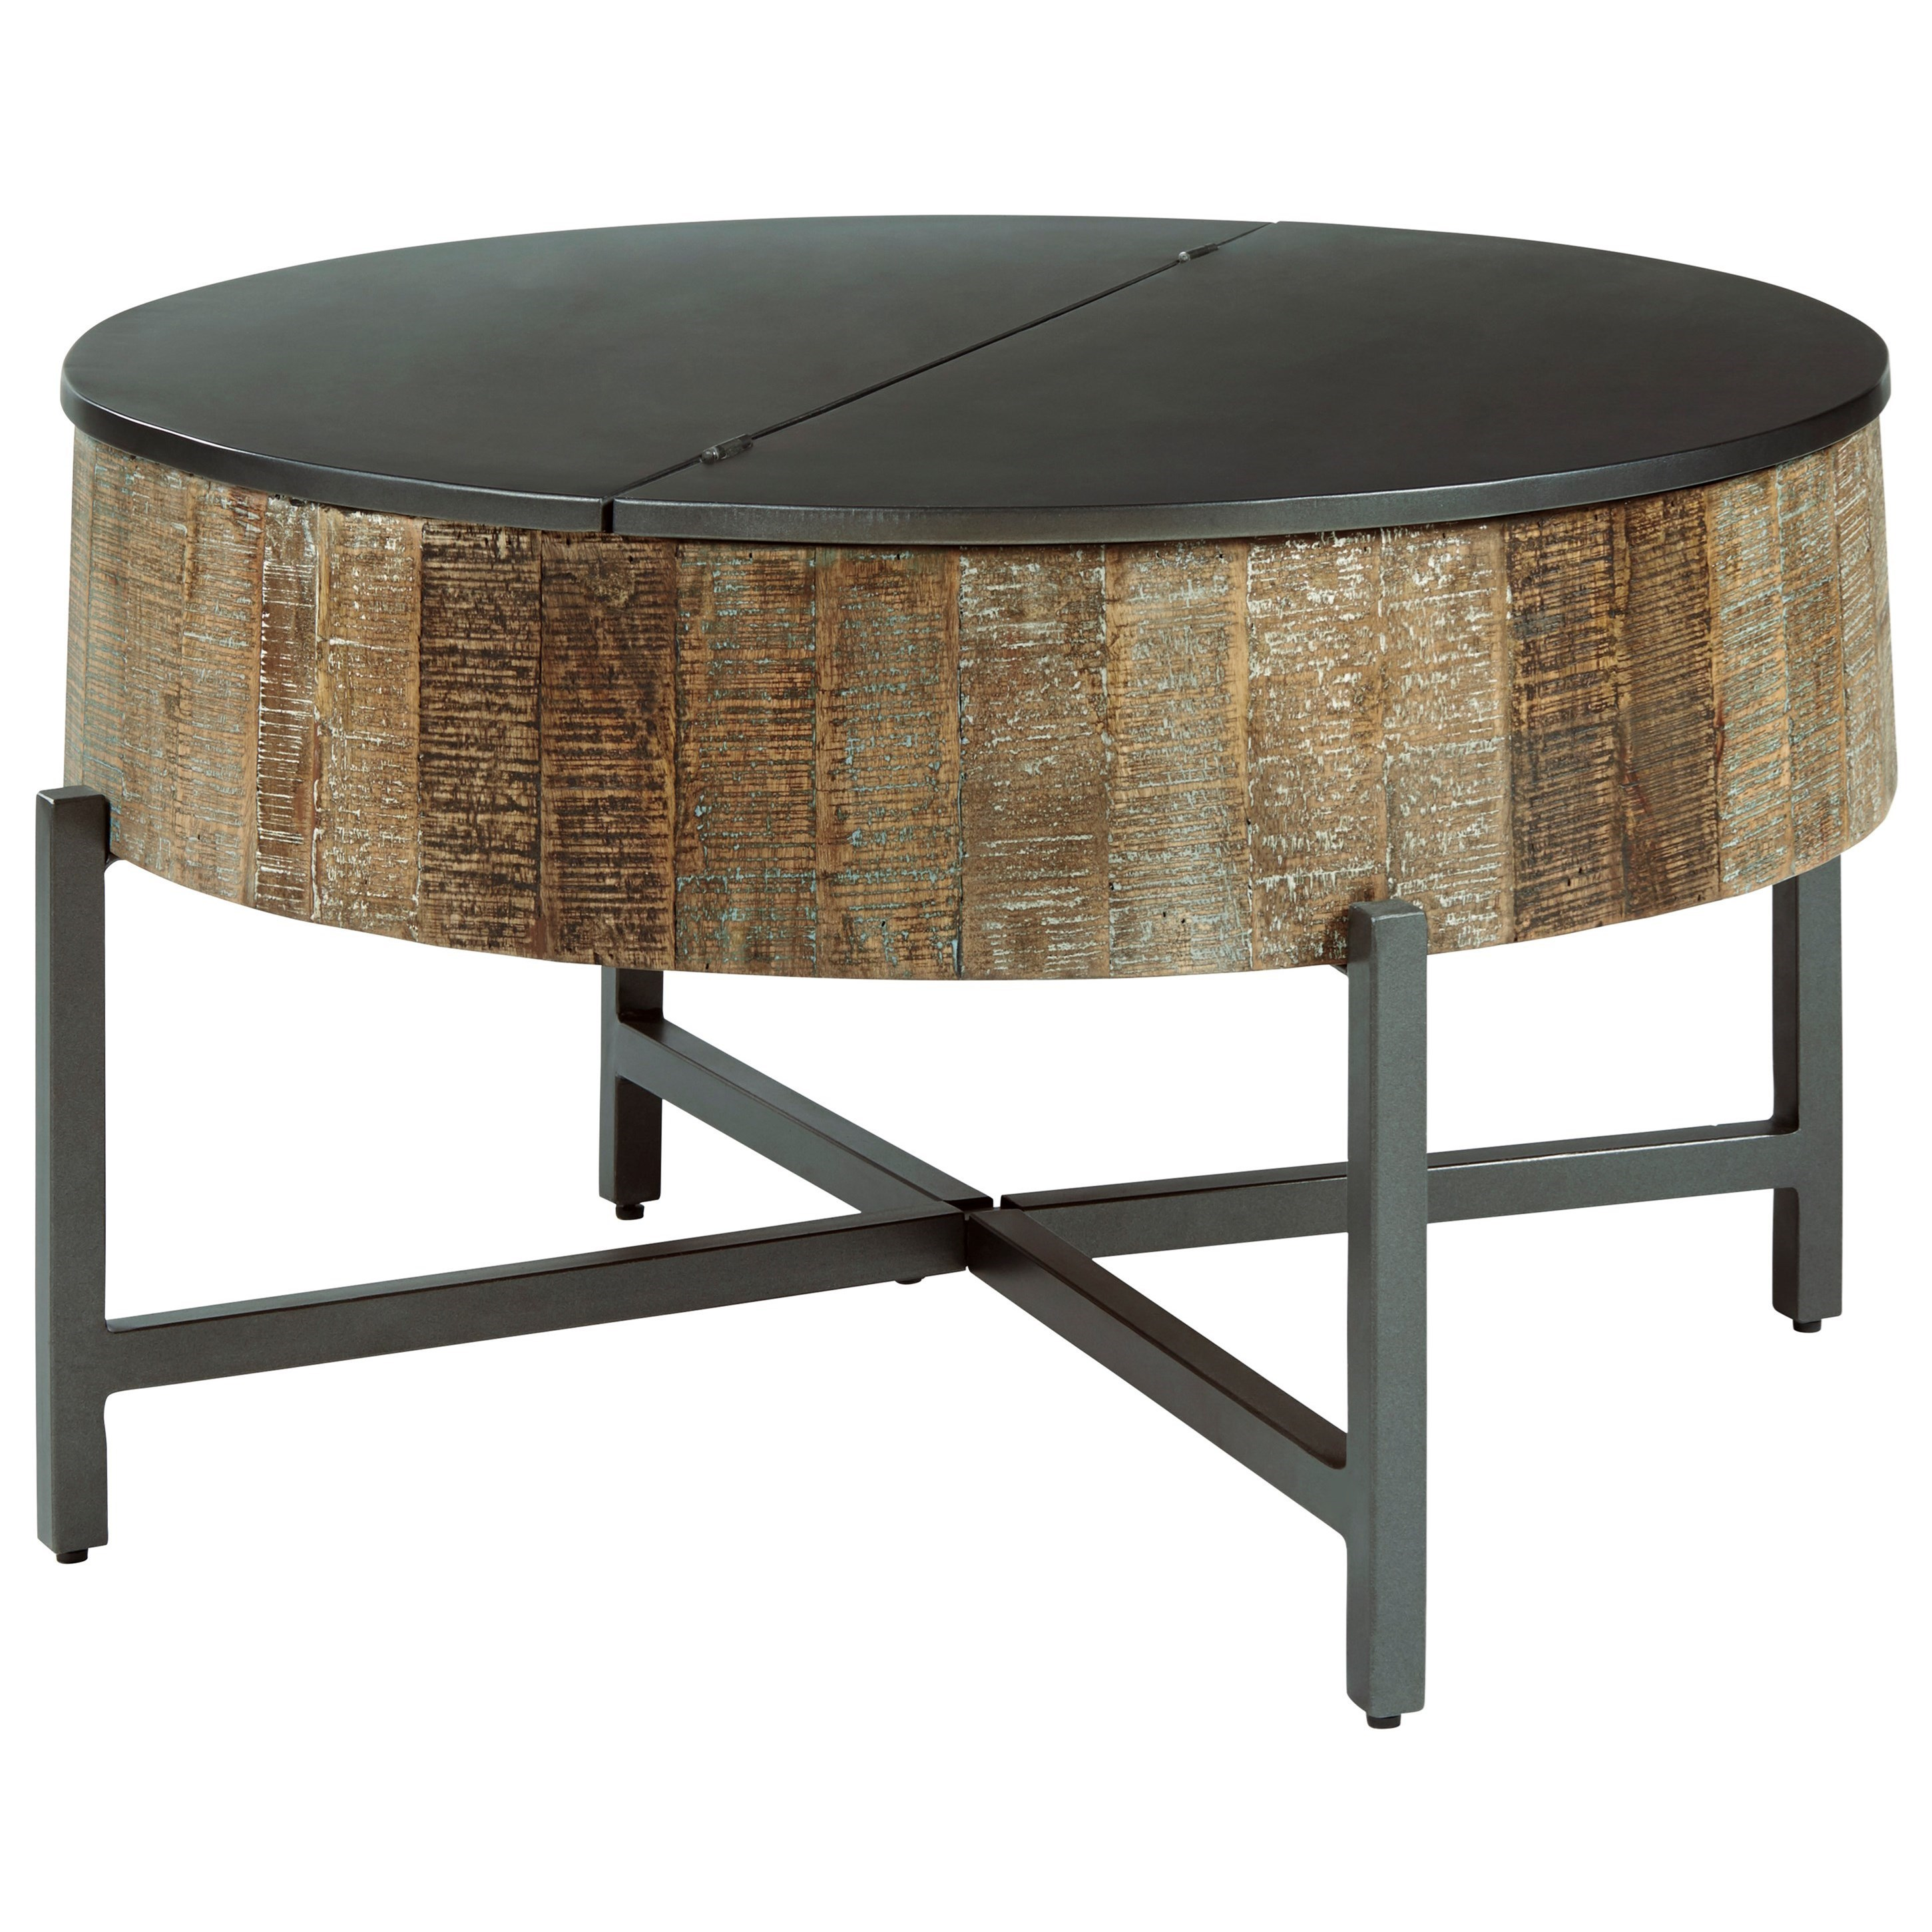 Picture of: Signature Design By Ashley Nashbryn Rustic Round Cocktail Table With Metal Base And Lid Top Godby Home Furnishings Cocktail Coffee Tables